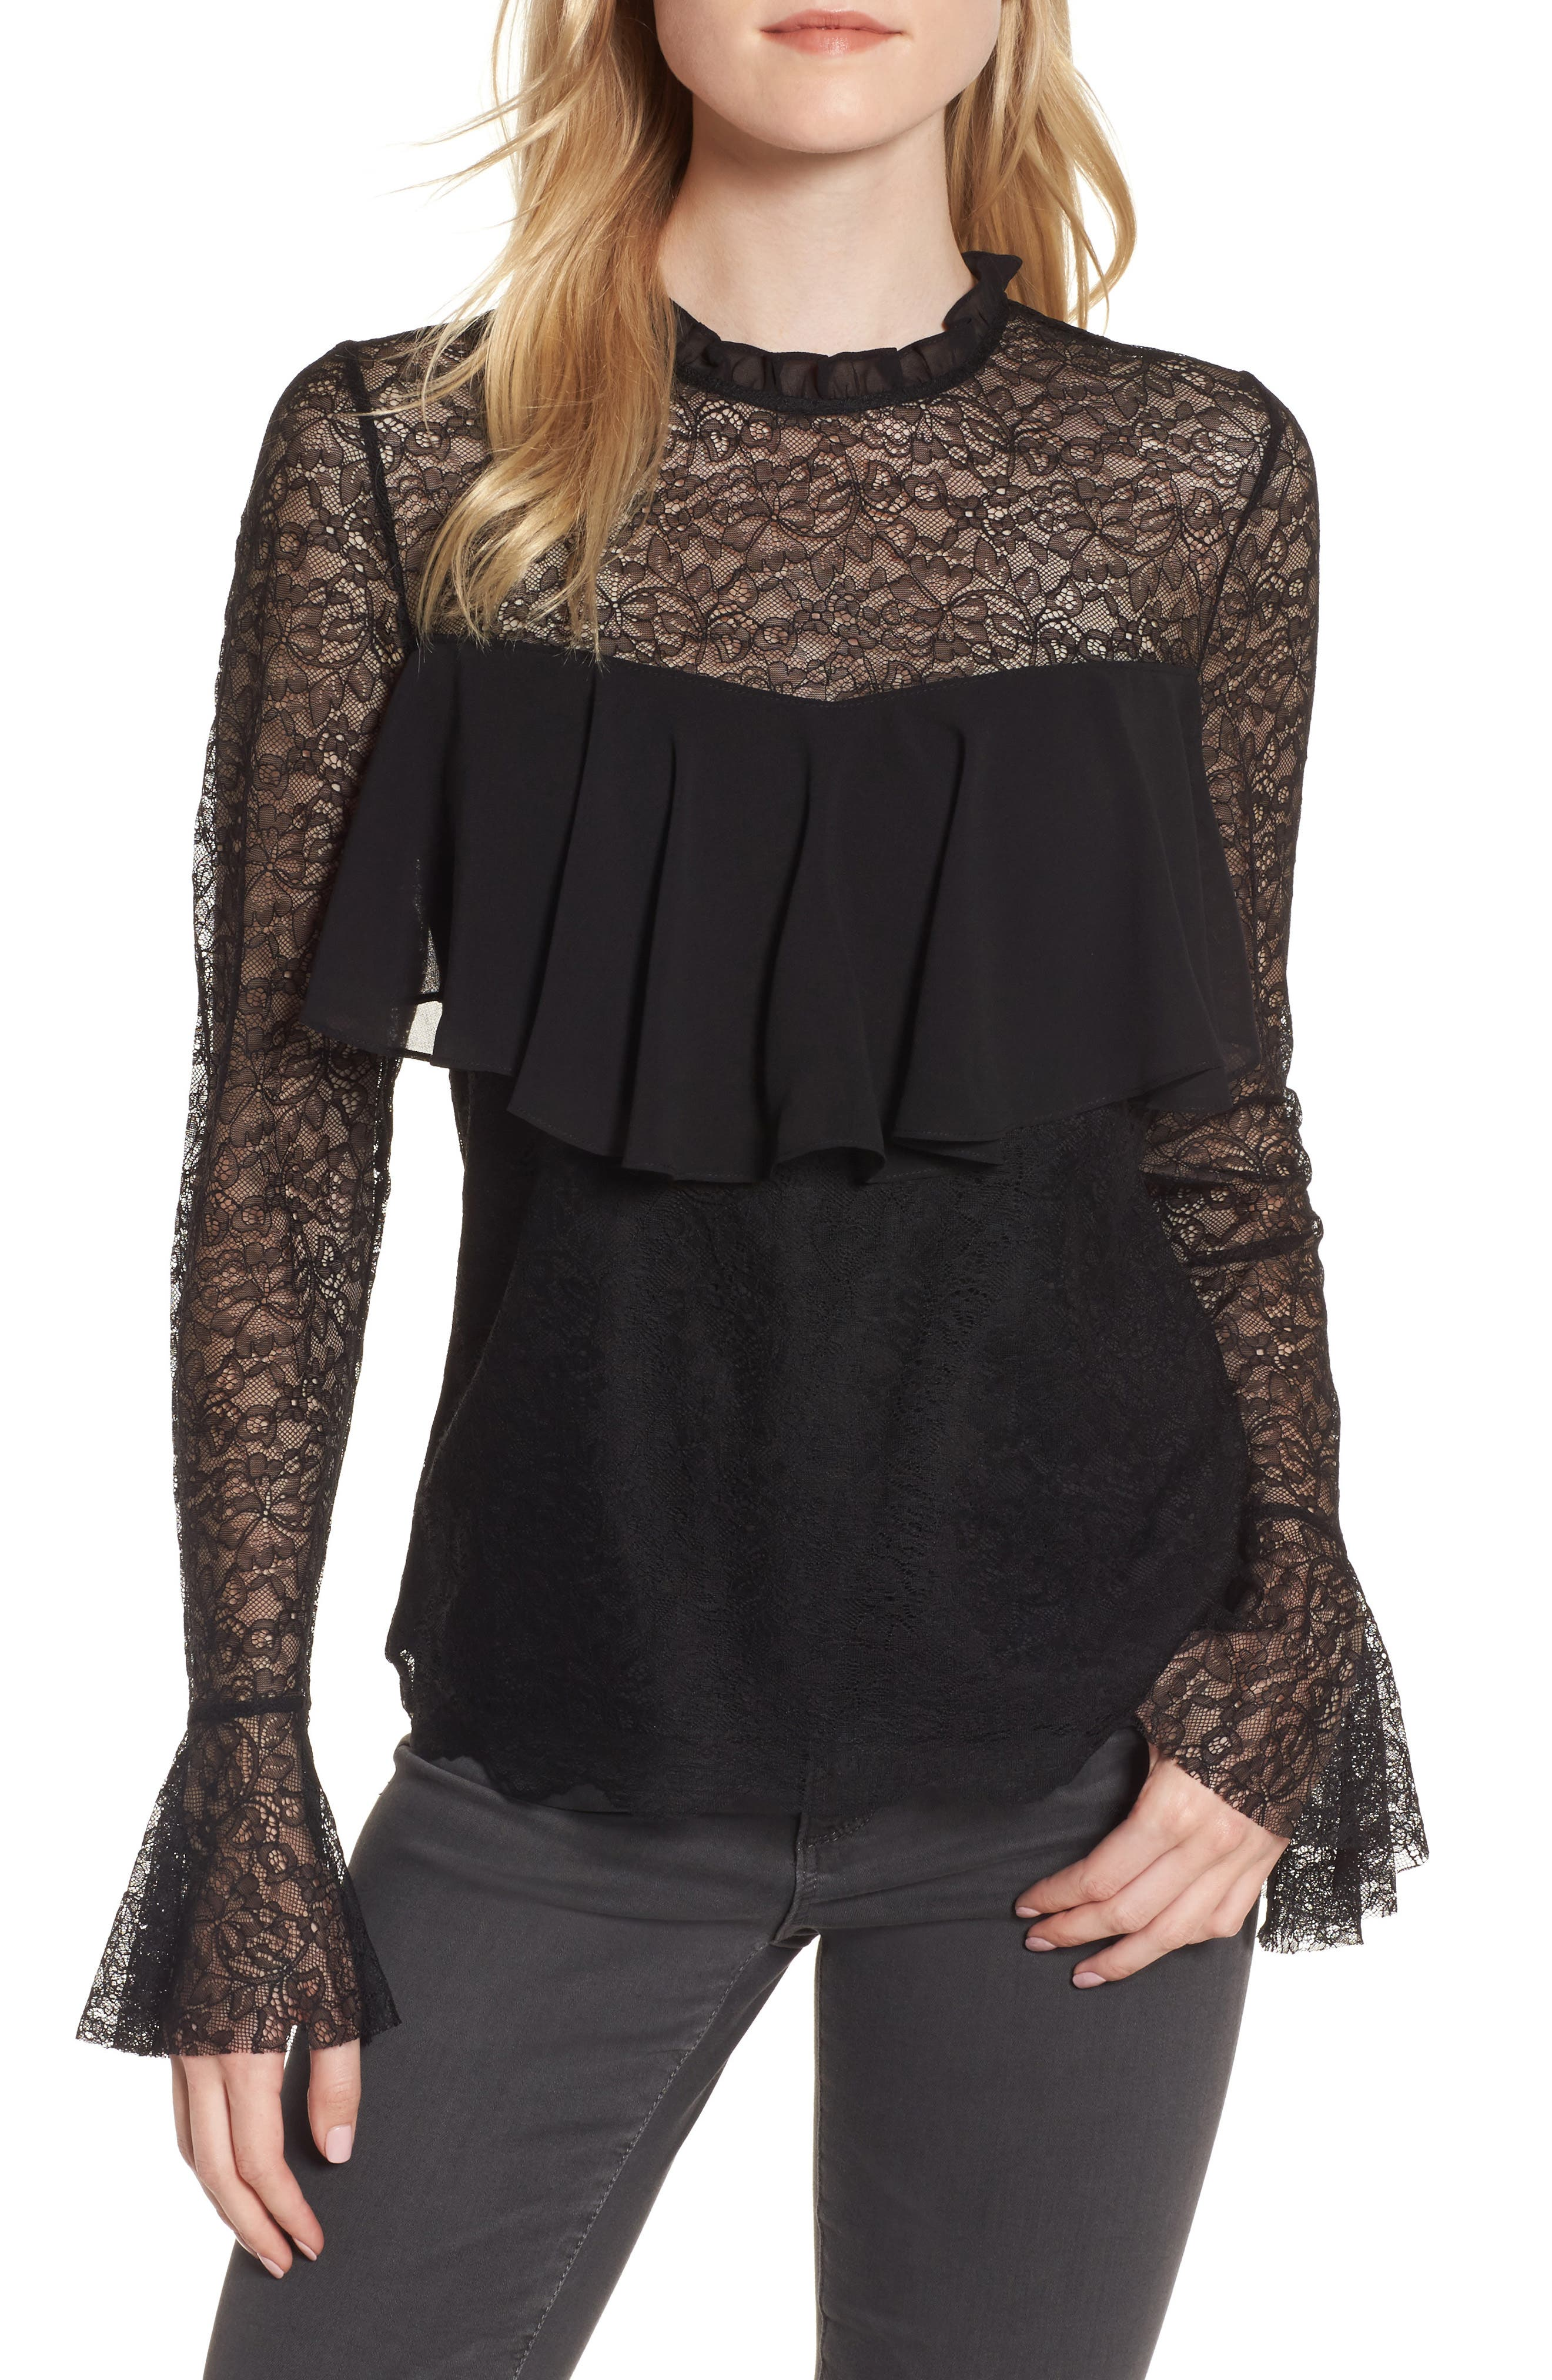 Alternate Image 1 Selected - Chelsea28 Ruffle Lace Top